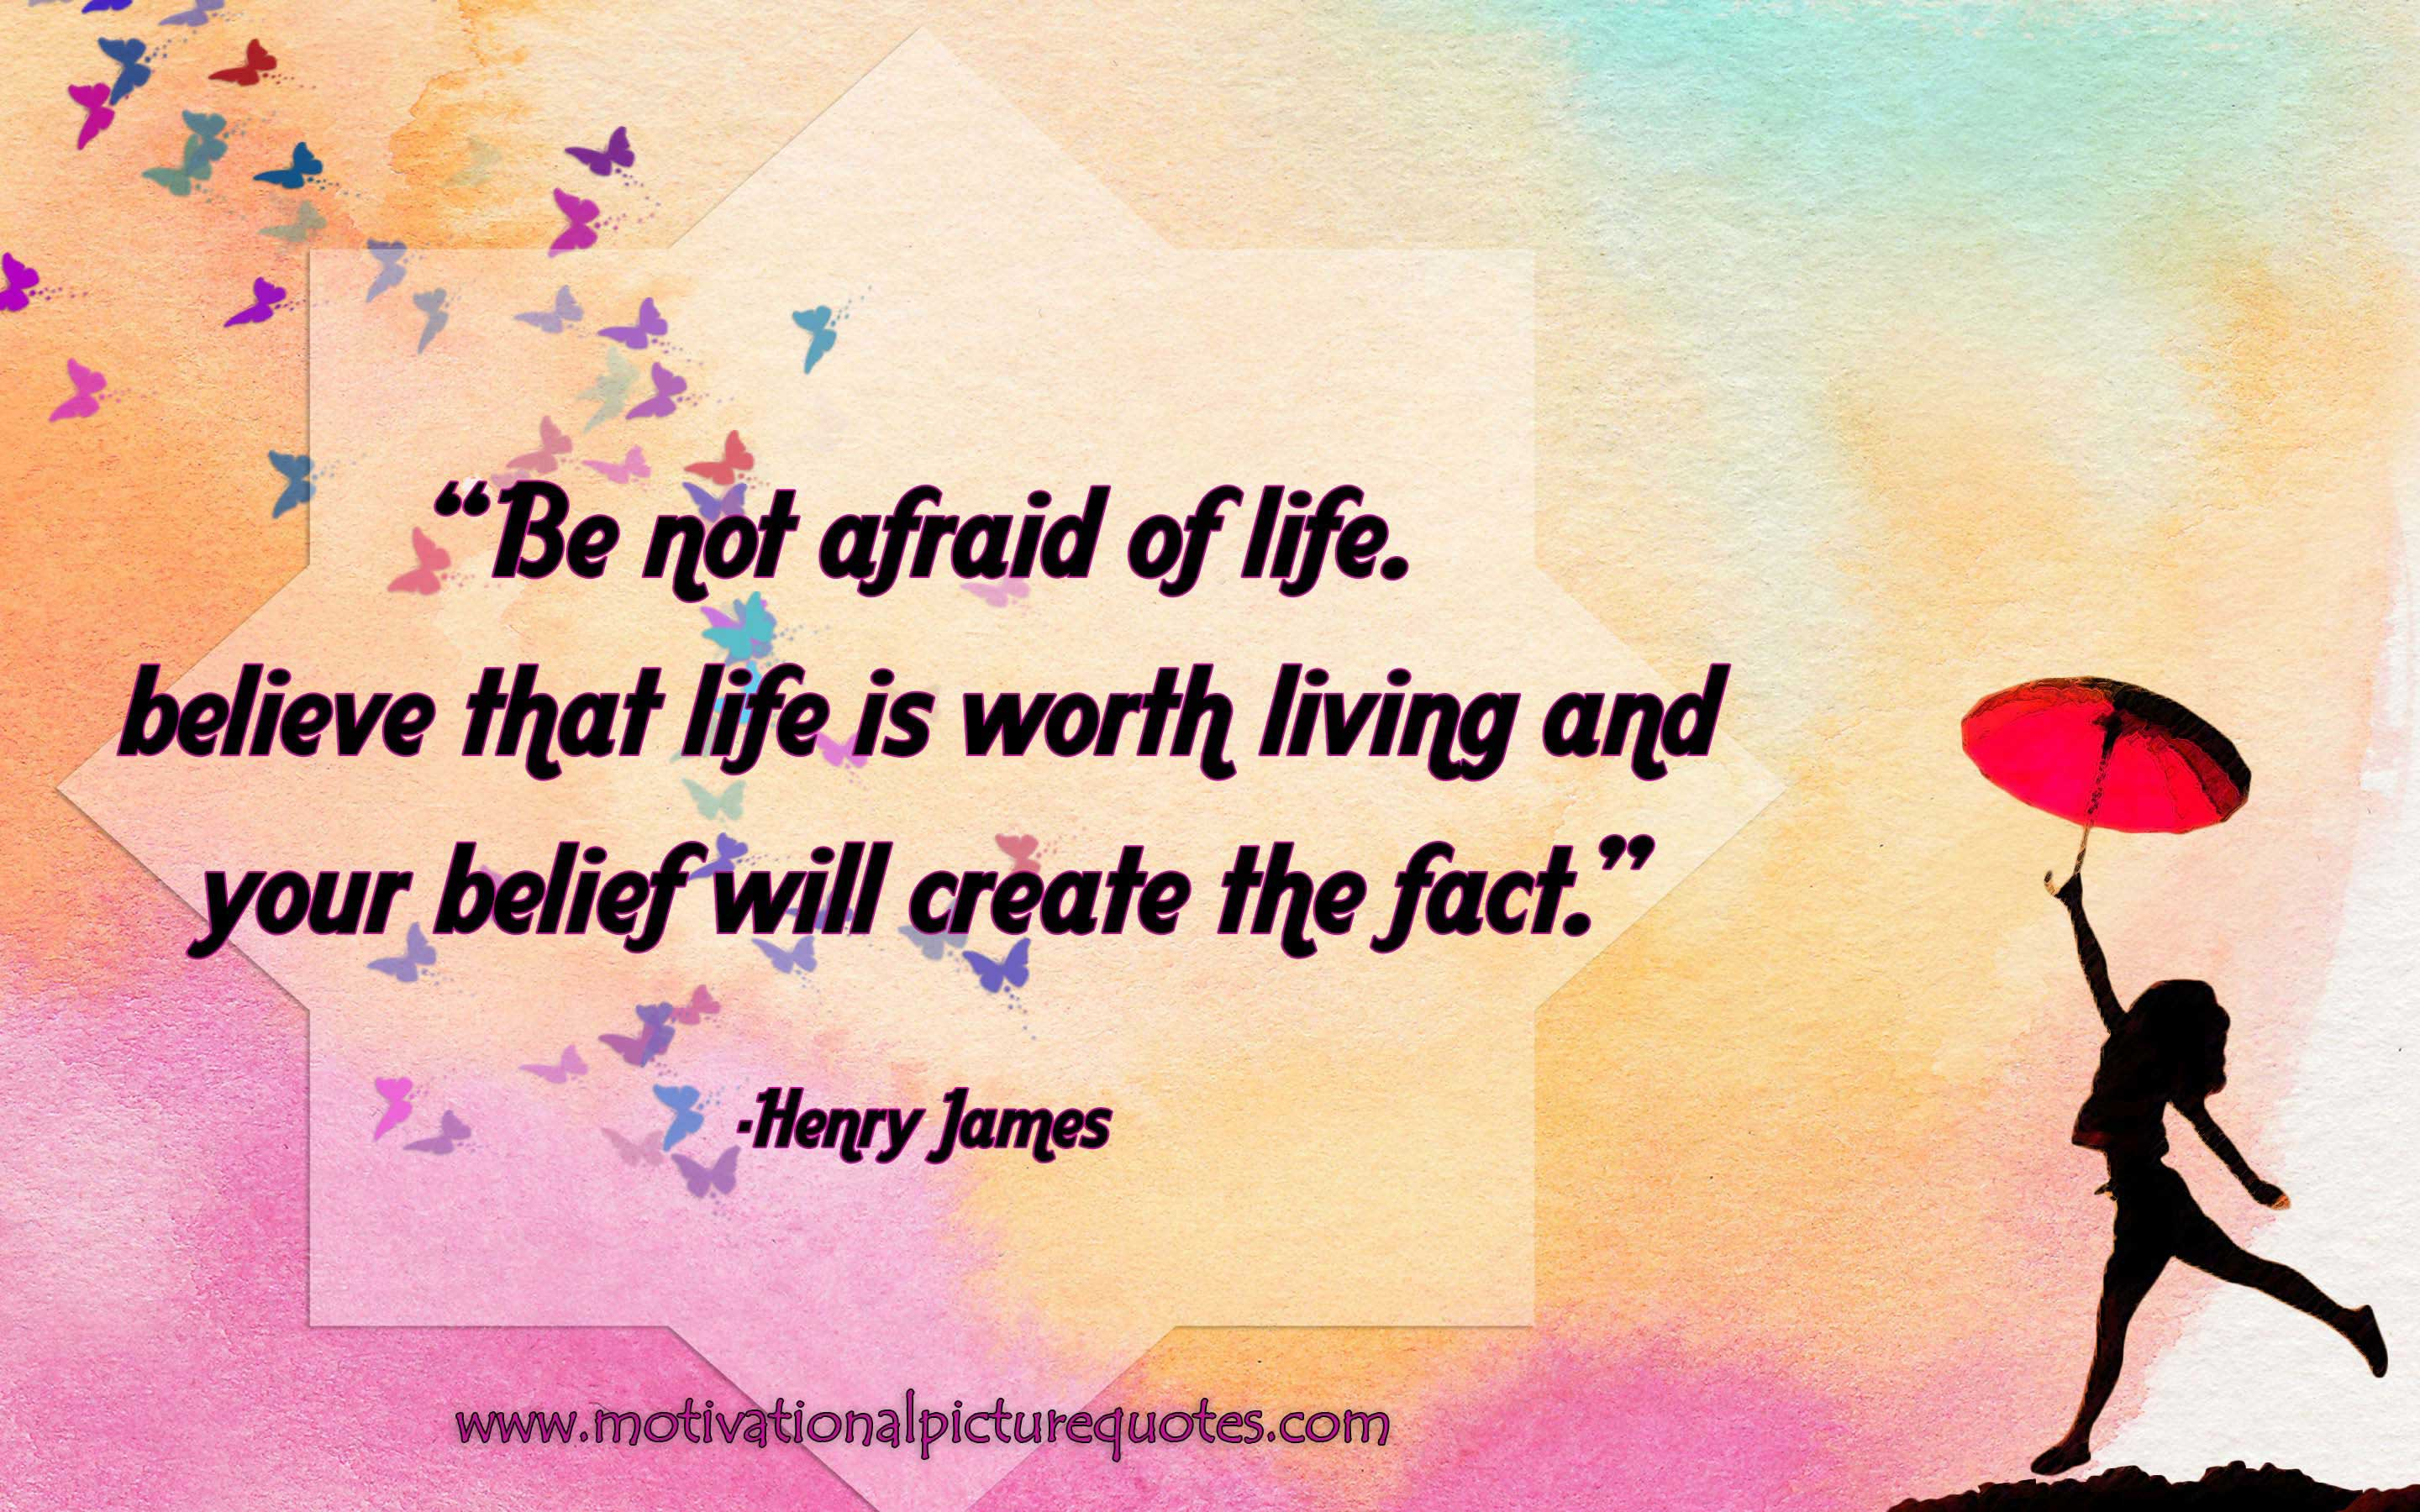 50 Best Life Quotes Images For Free Download Insbright